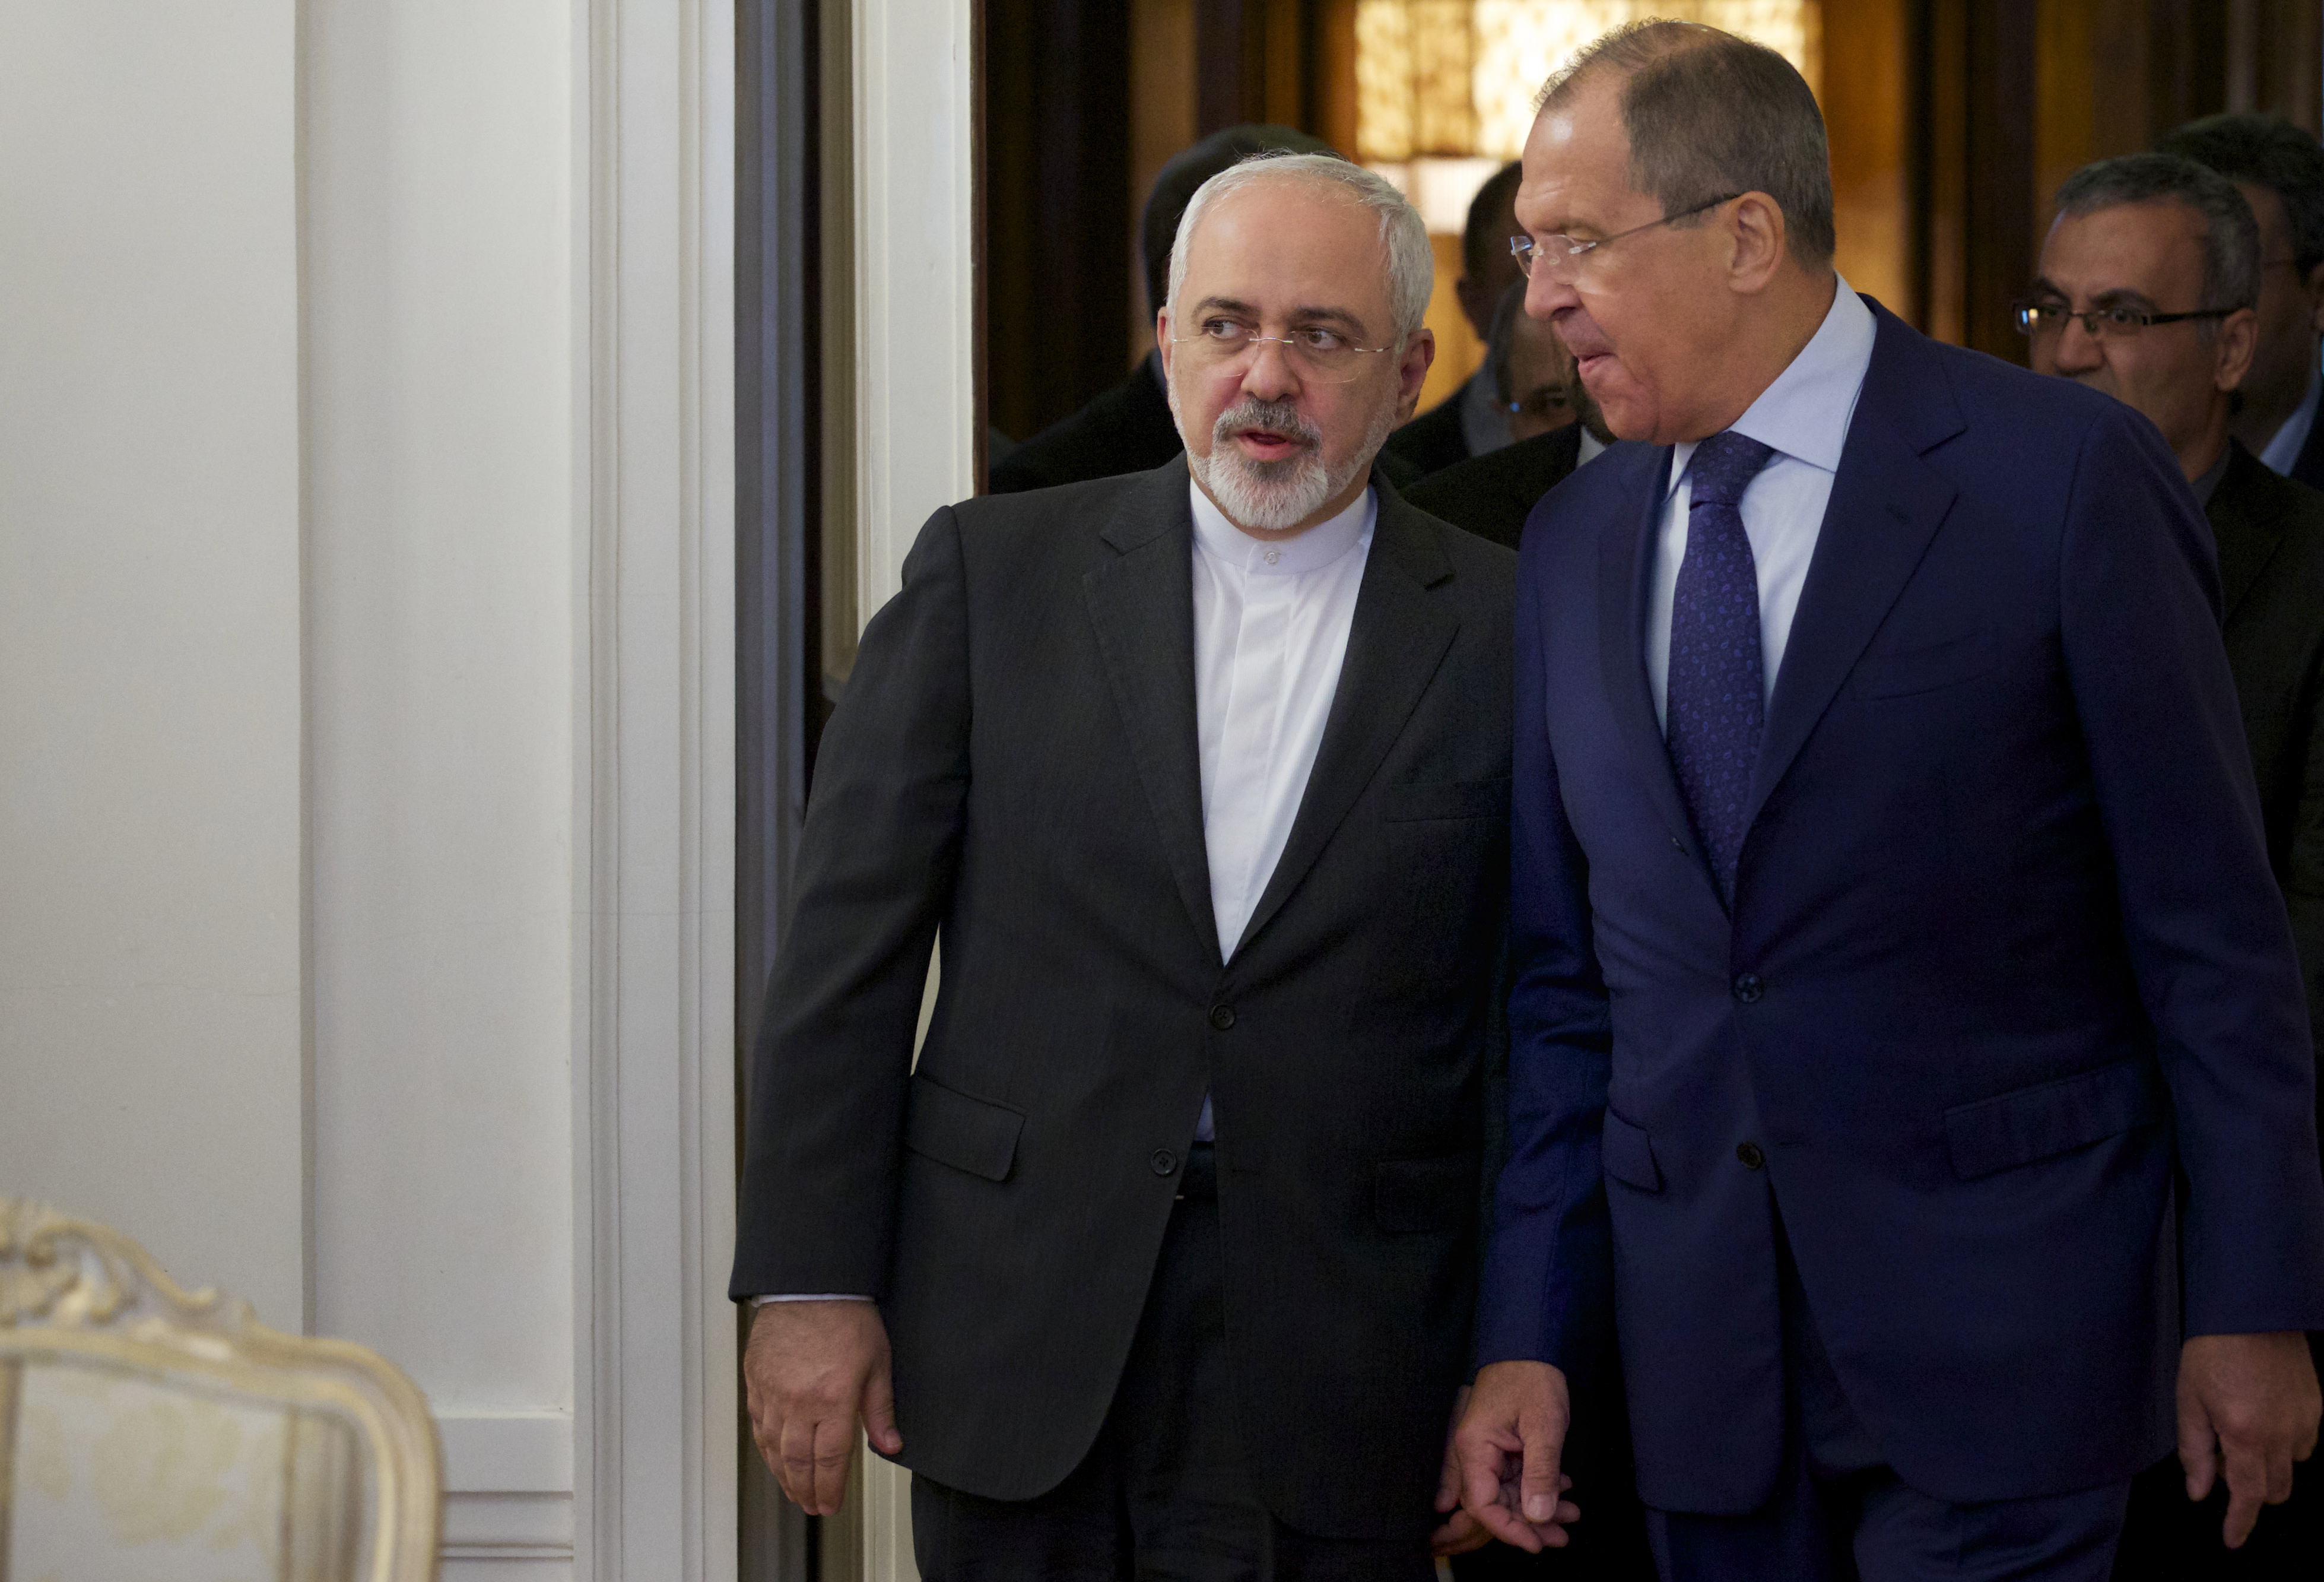 Iranian Foreign Minister Mohammad Javad Zarif and his Russian counterpart Sergei Lavrov